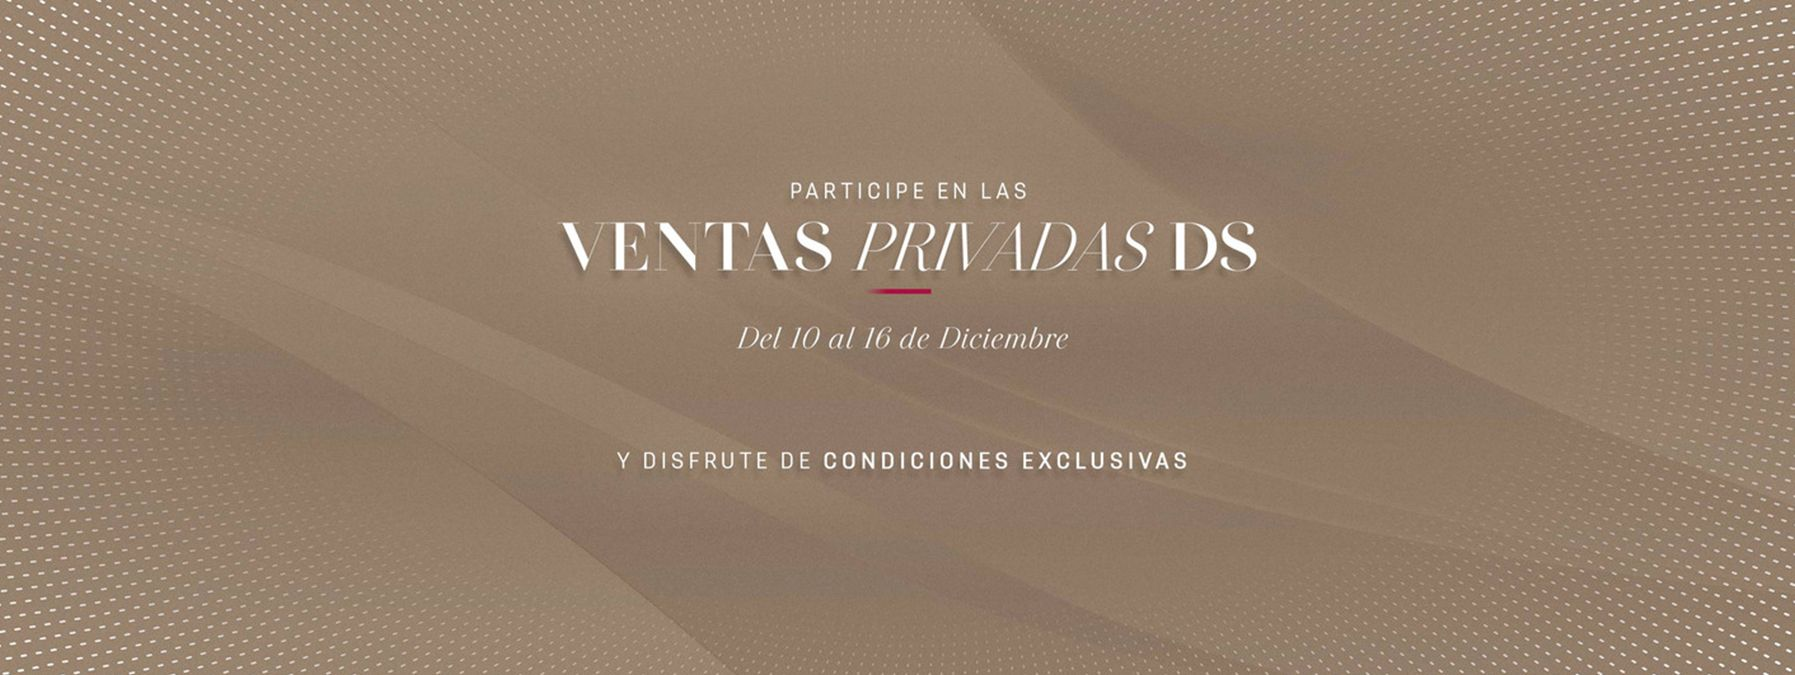 VENTAS PRIVADAS DS